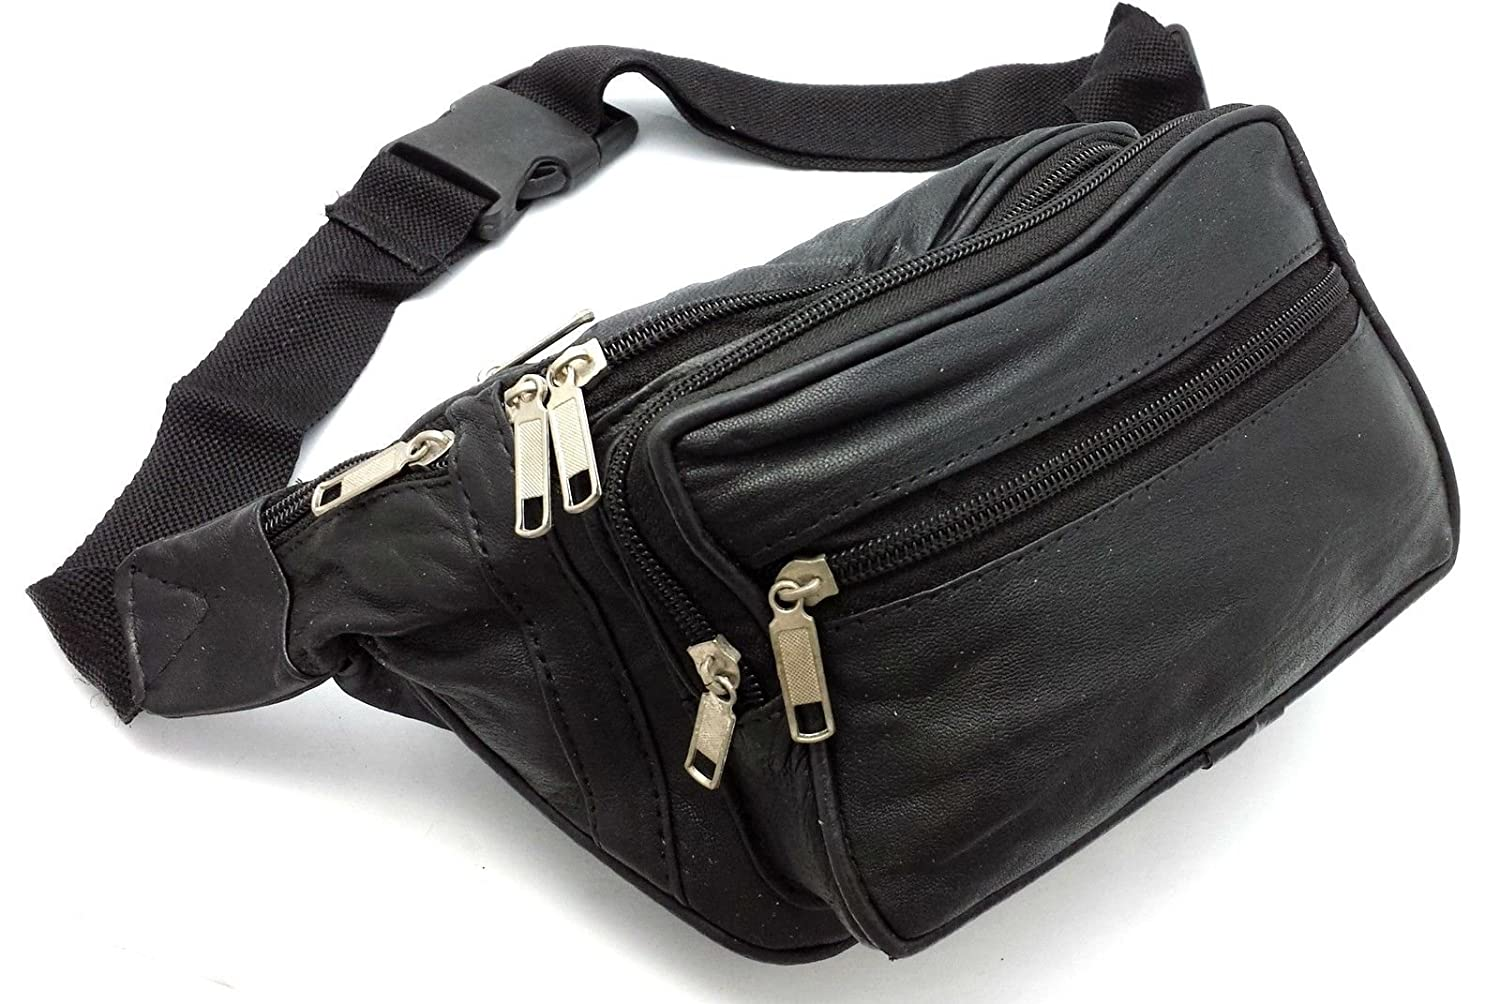 LEATHER BUM BAG BLACK WAIST BAG MONEY BELT TRAVEL HOLIDAY POUCH CHANGE